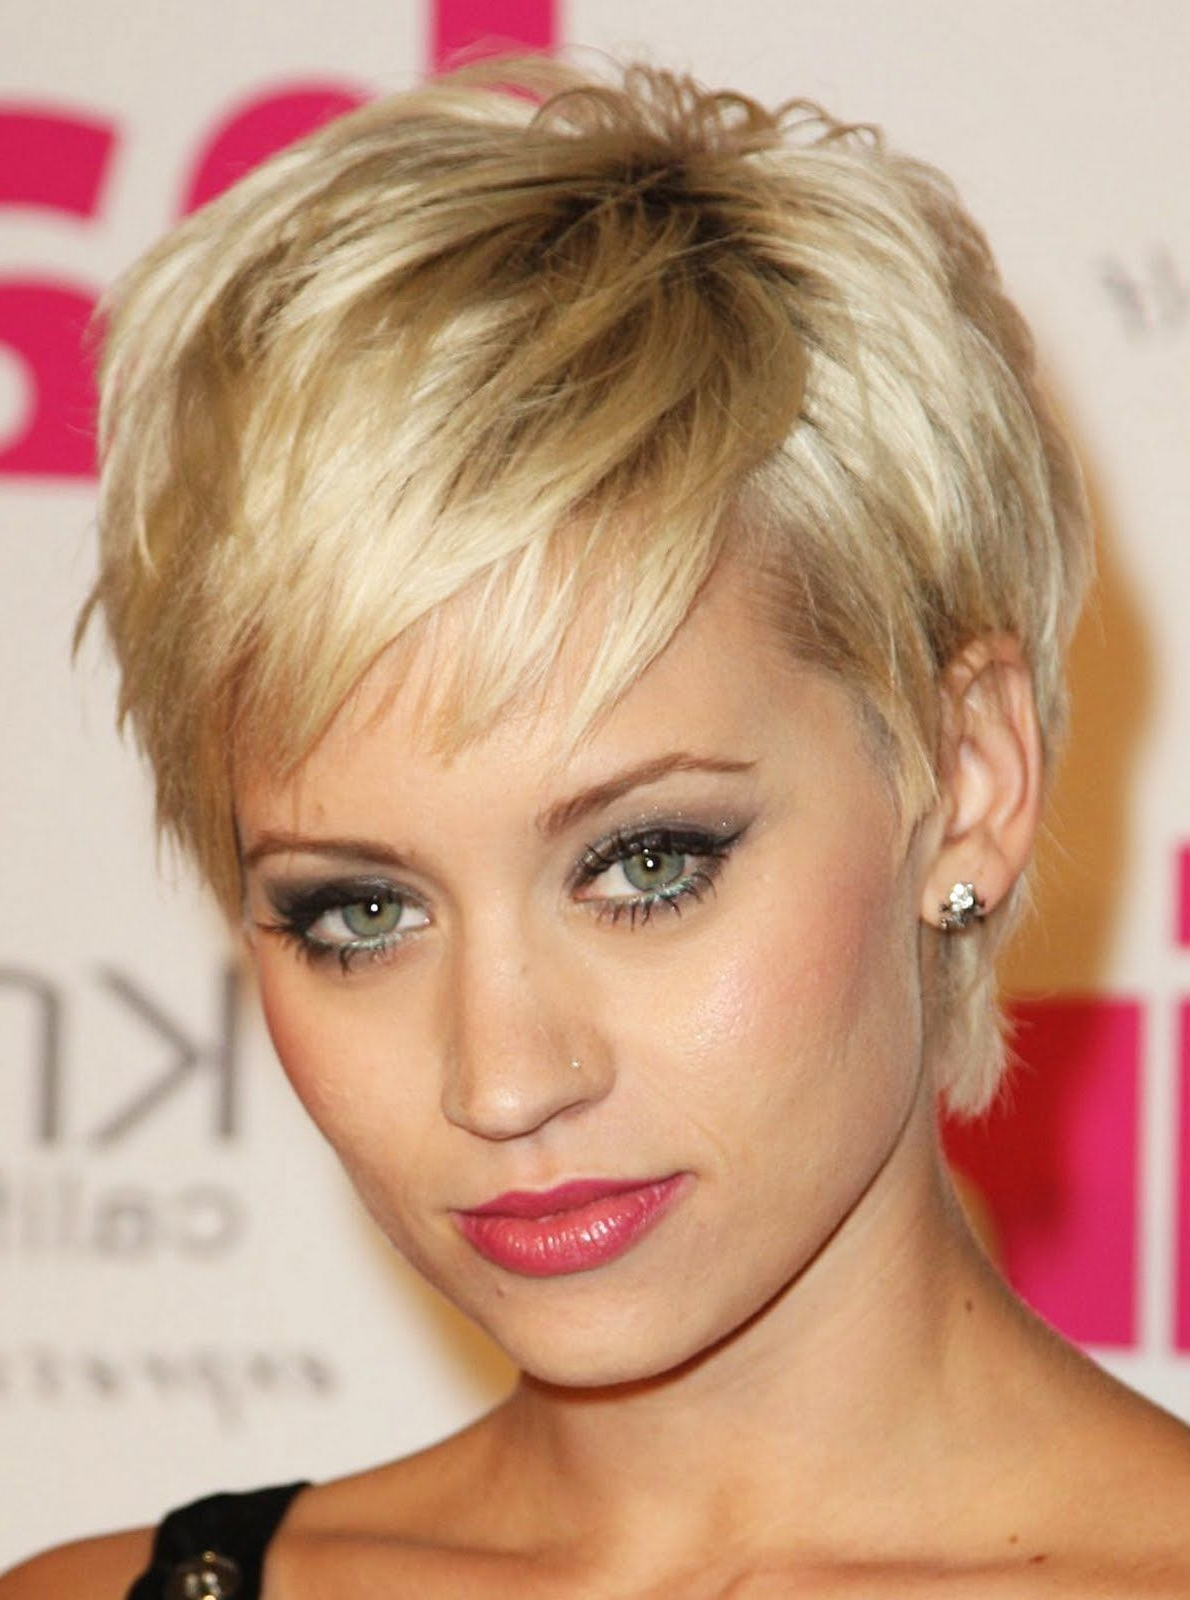 Short Hairstyles For Oval Faces | Hair Cut | Pinterest | Short Hair Within Short Hairstyles For Petite Faces (View 1 of 25)